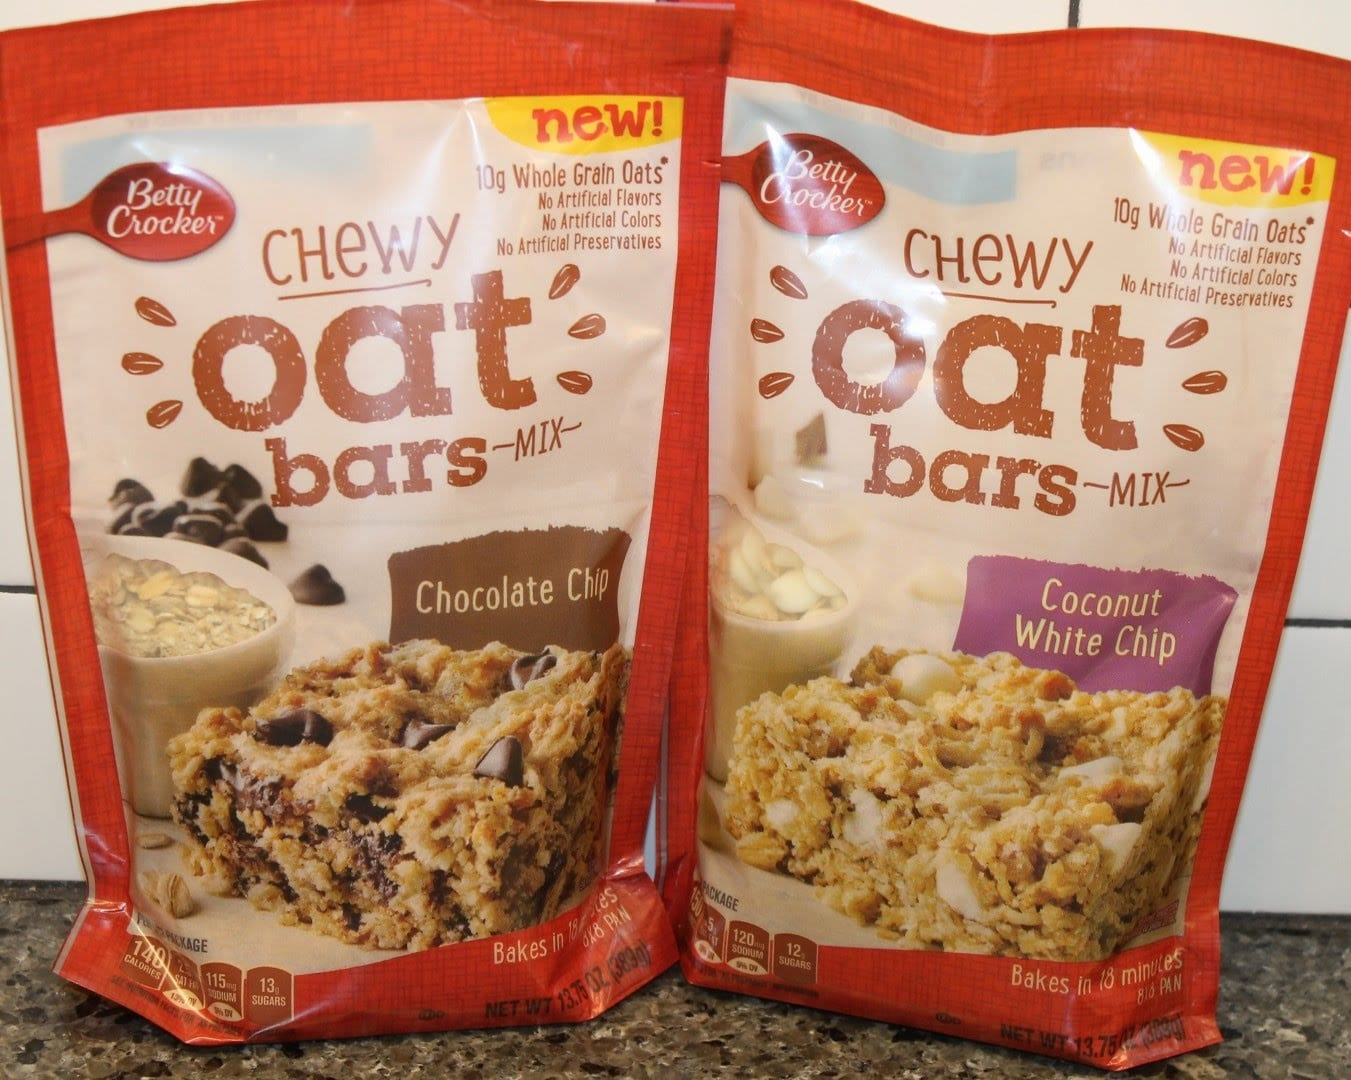 Betty Crocker Chewy Oat Bars  Chocolate Chip & Coconut White Chip